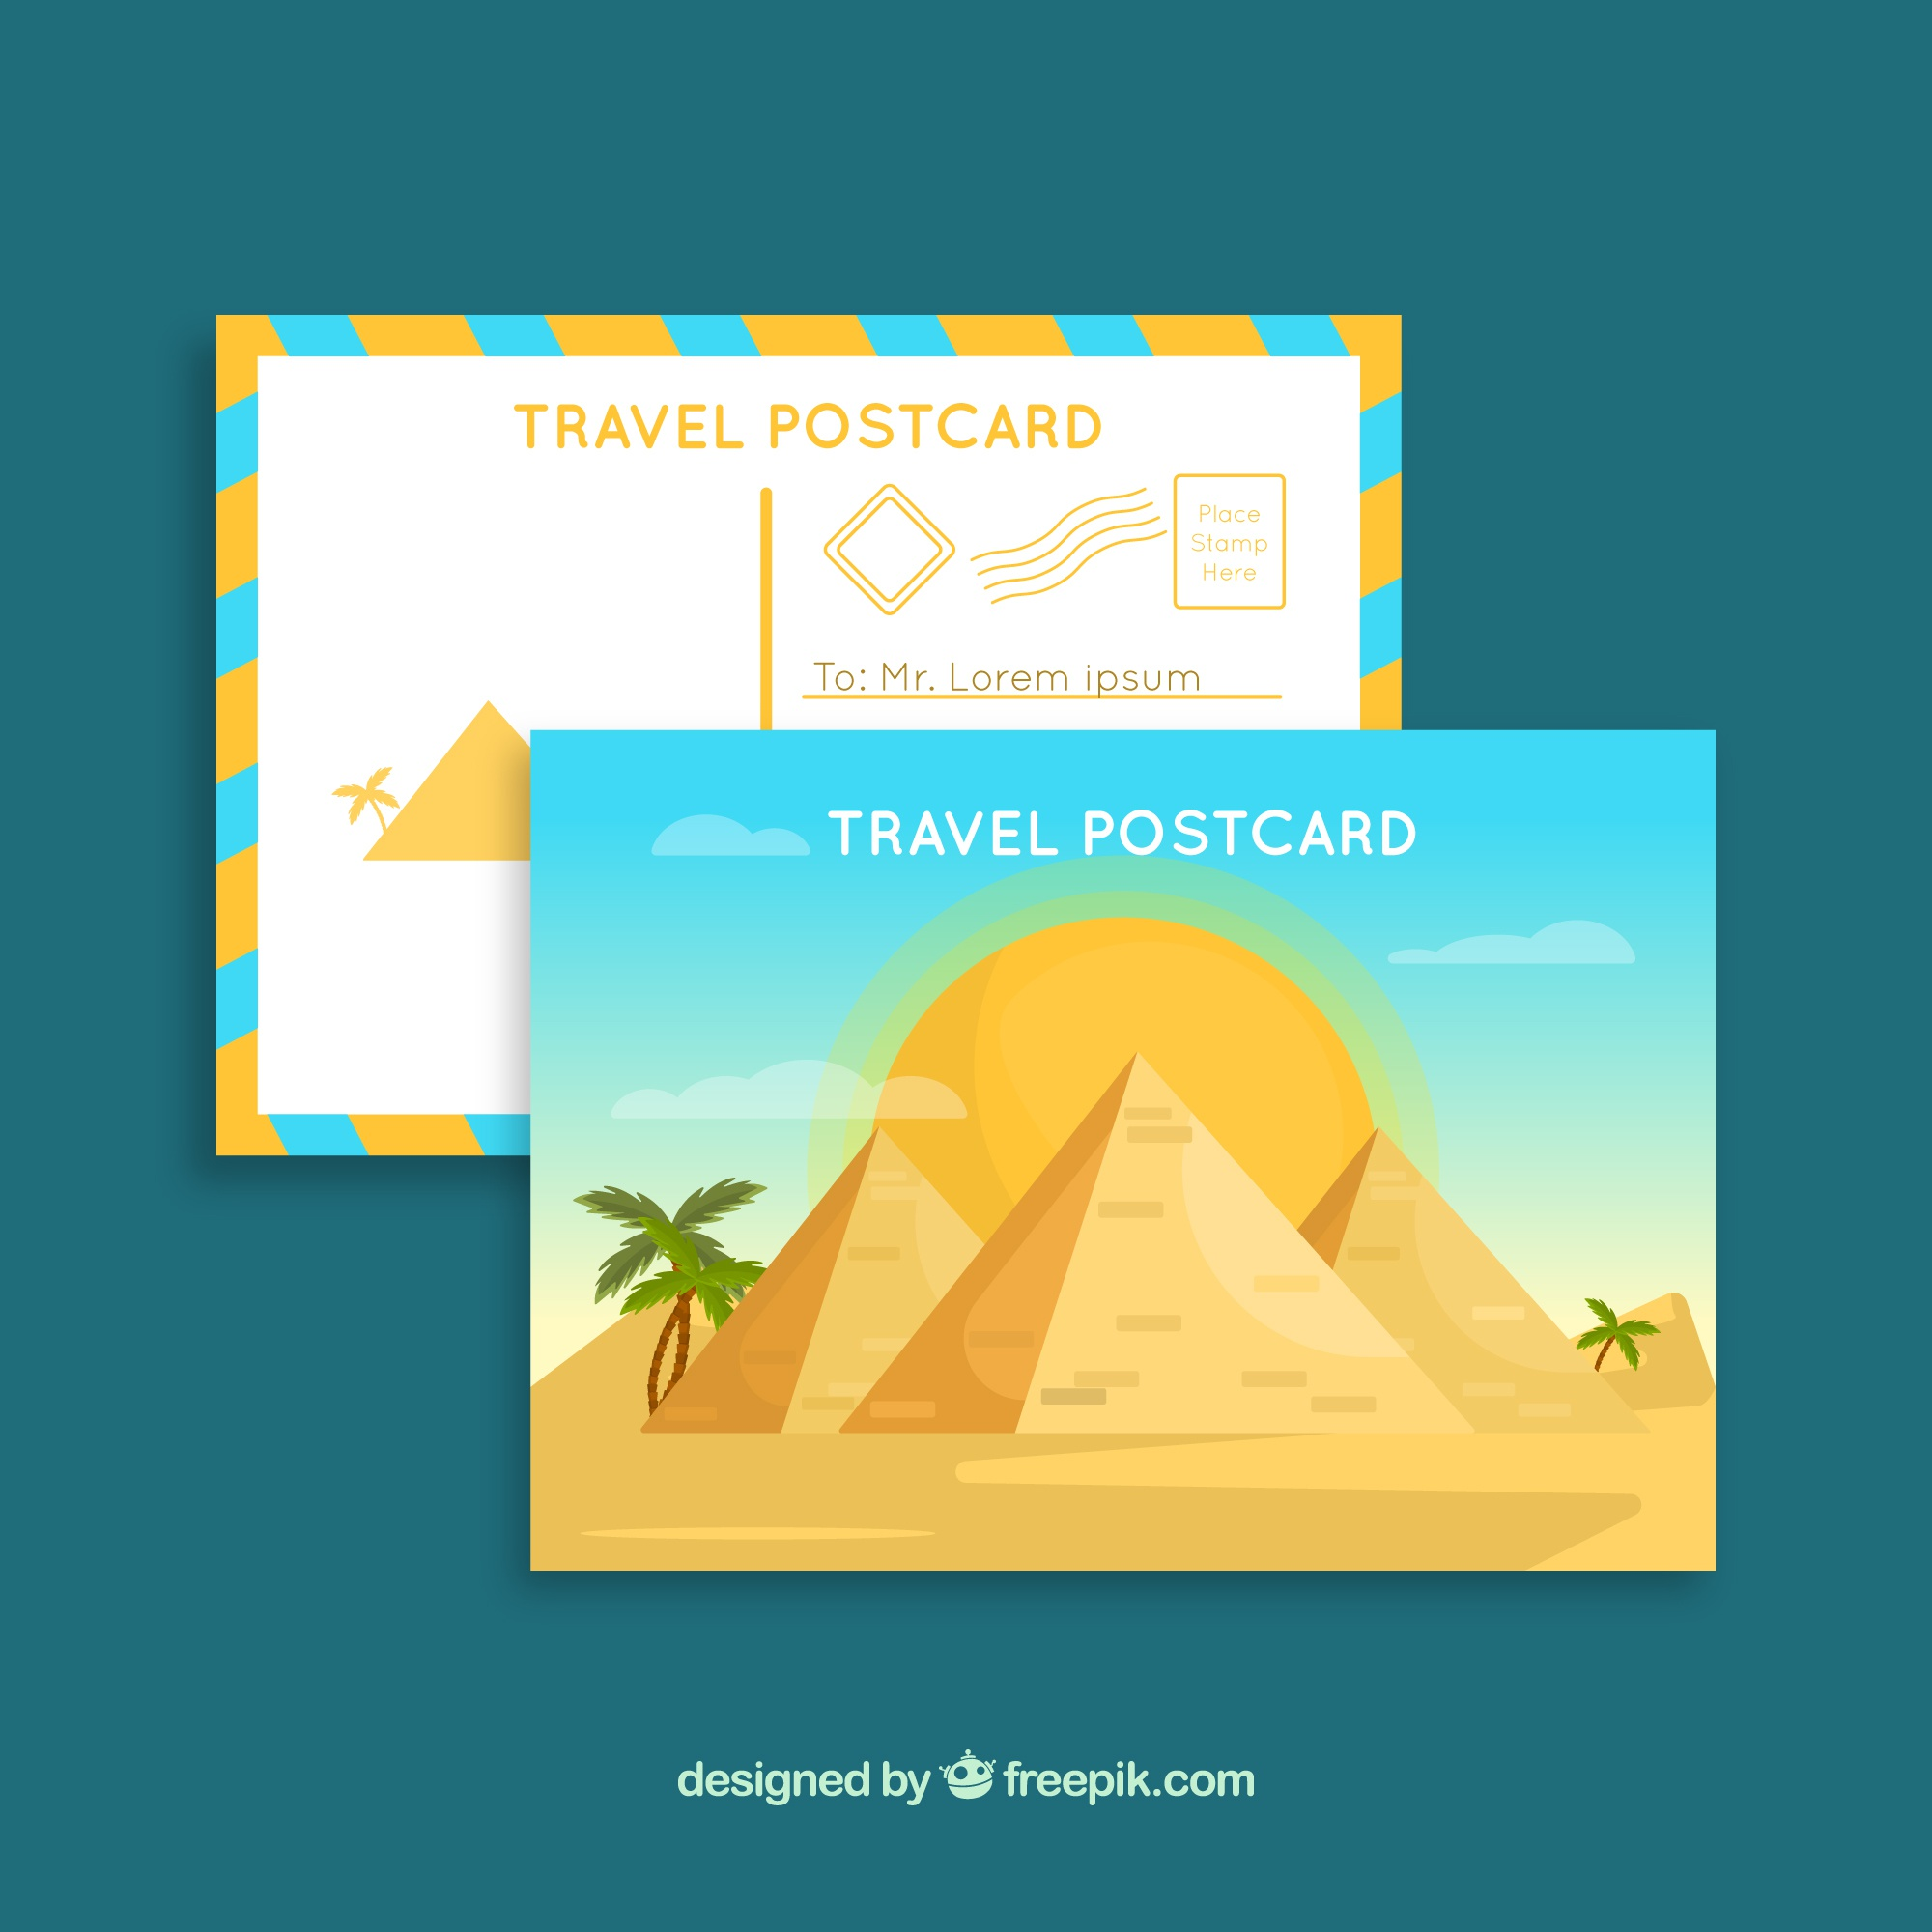 Travel postcard template with pyramids